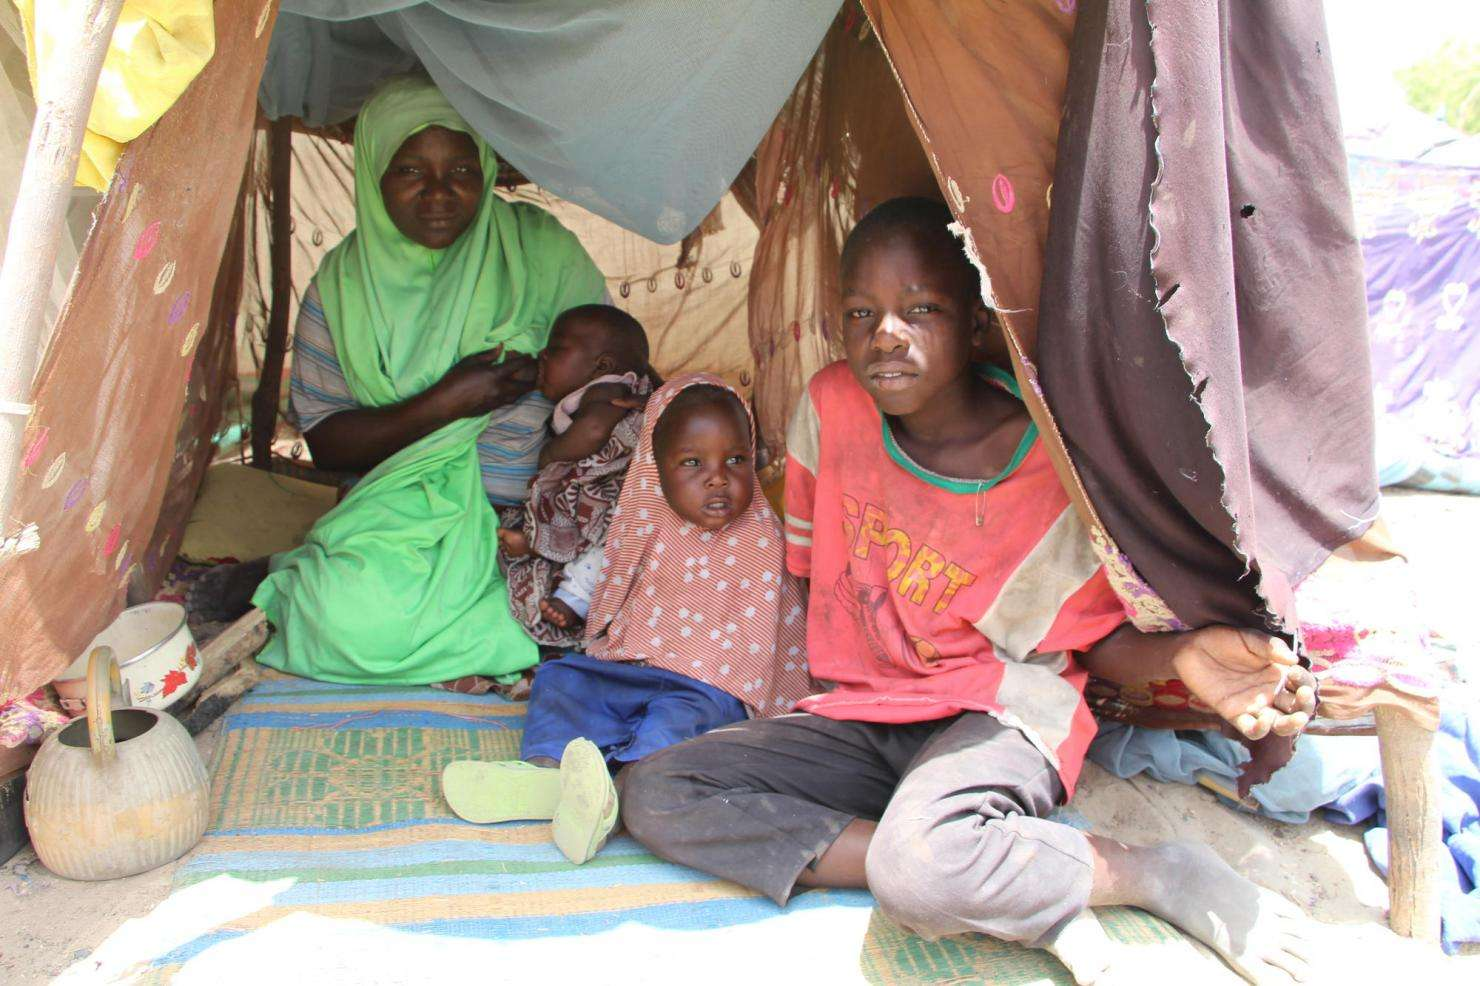 Over 30,000 people in acute need in Monguno